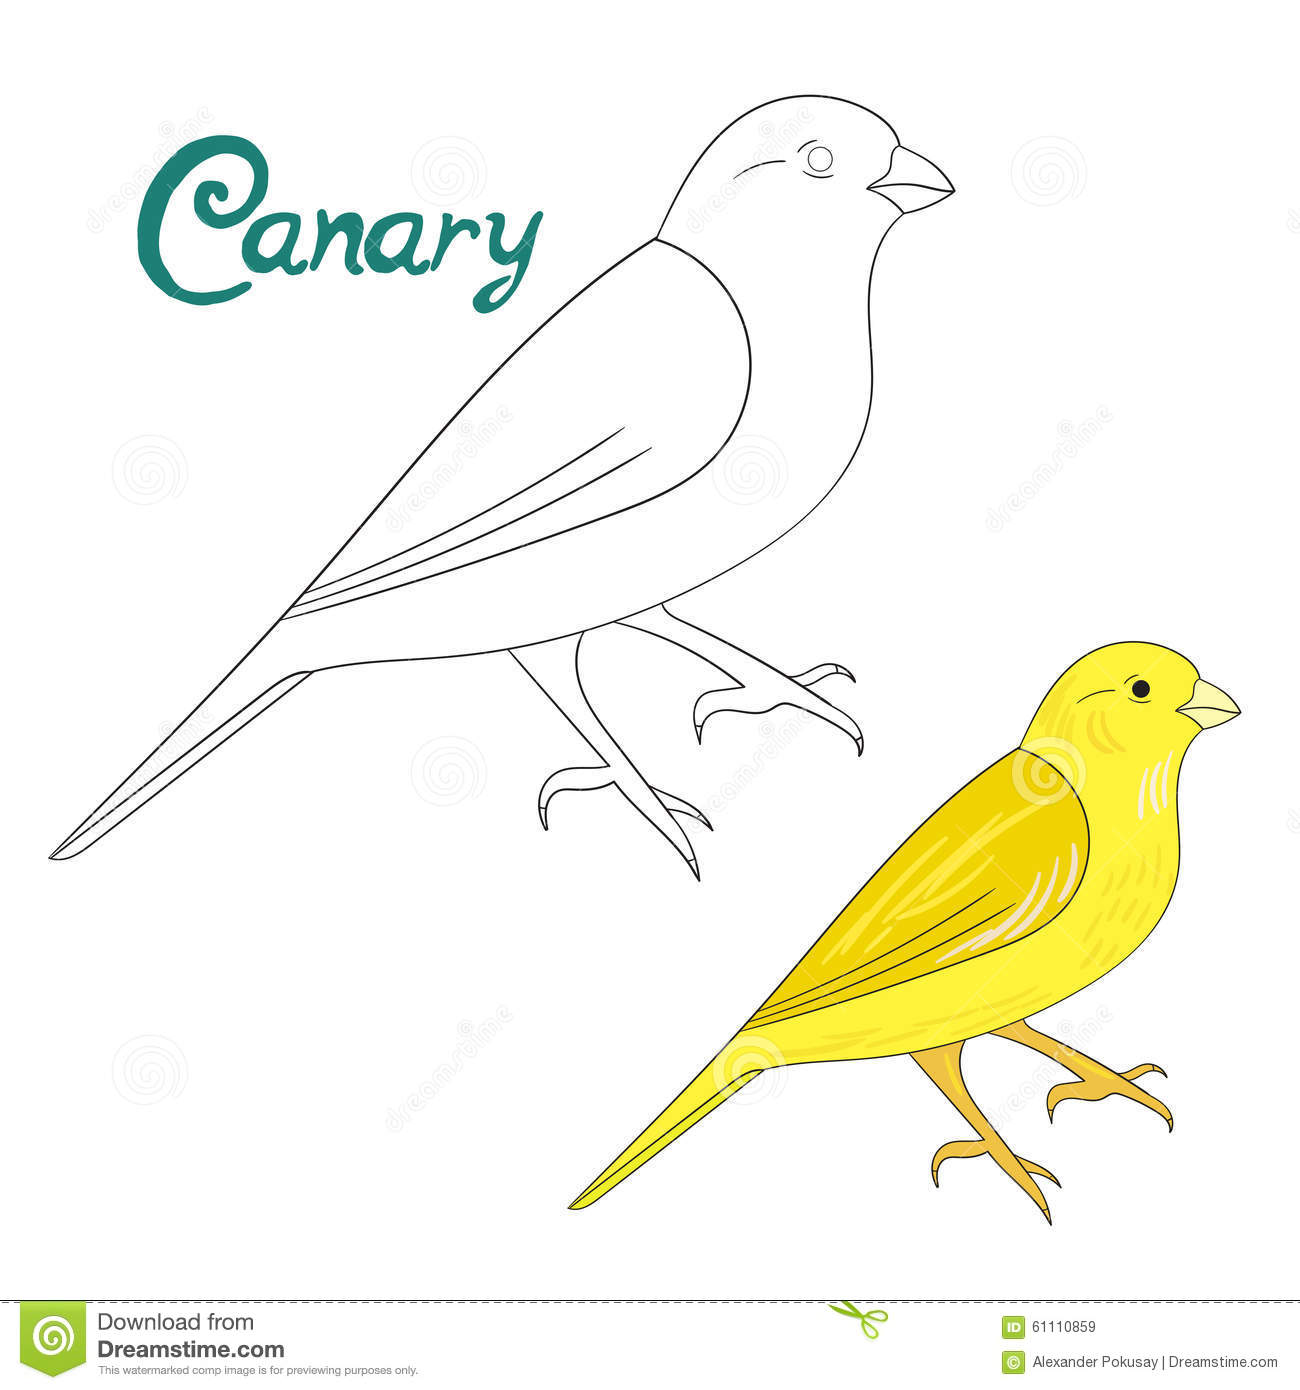 canary bird coloring pages - photo#41